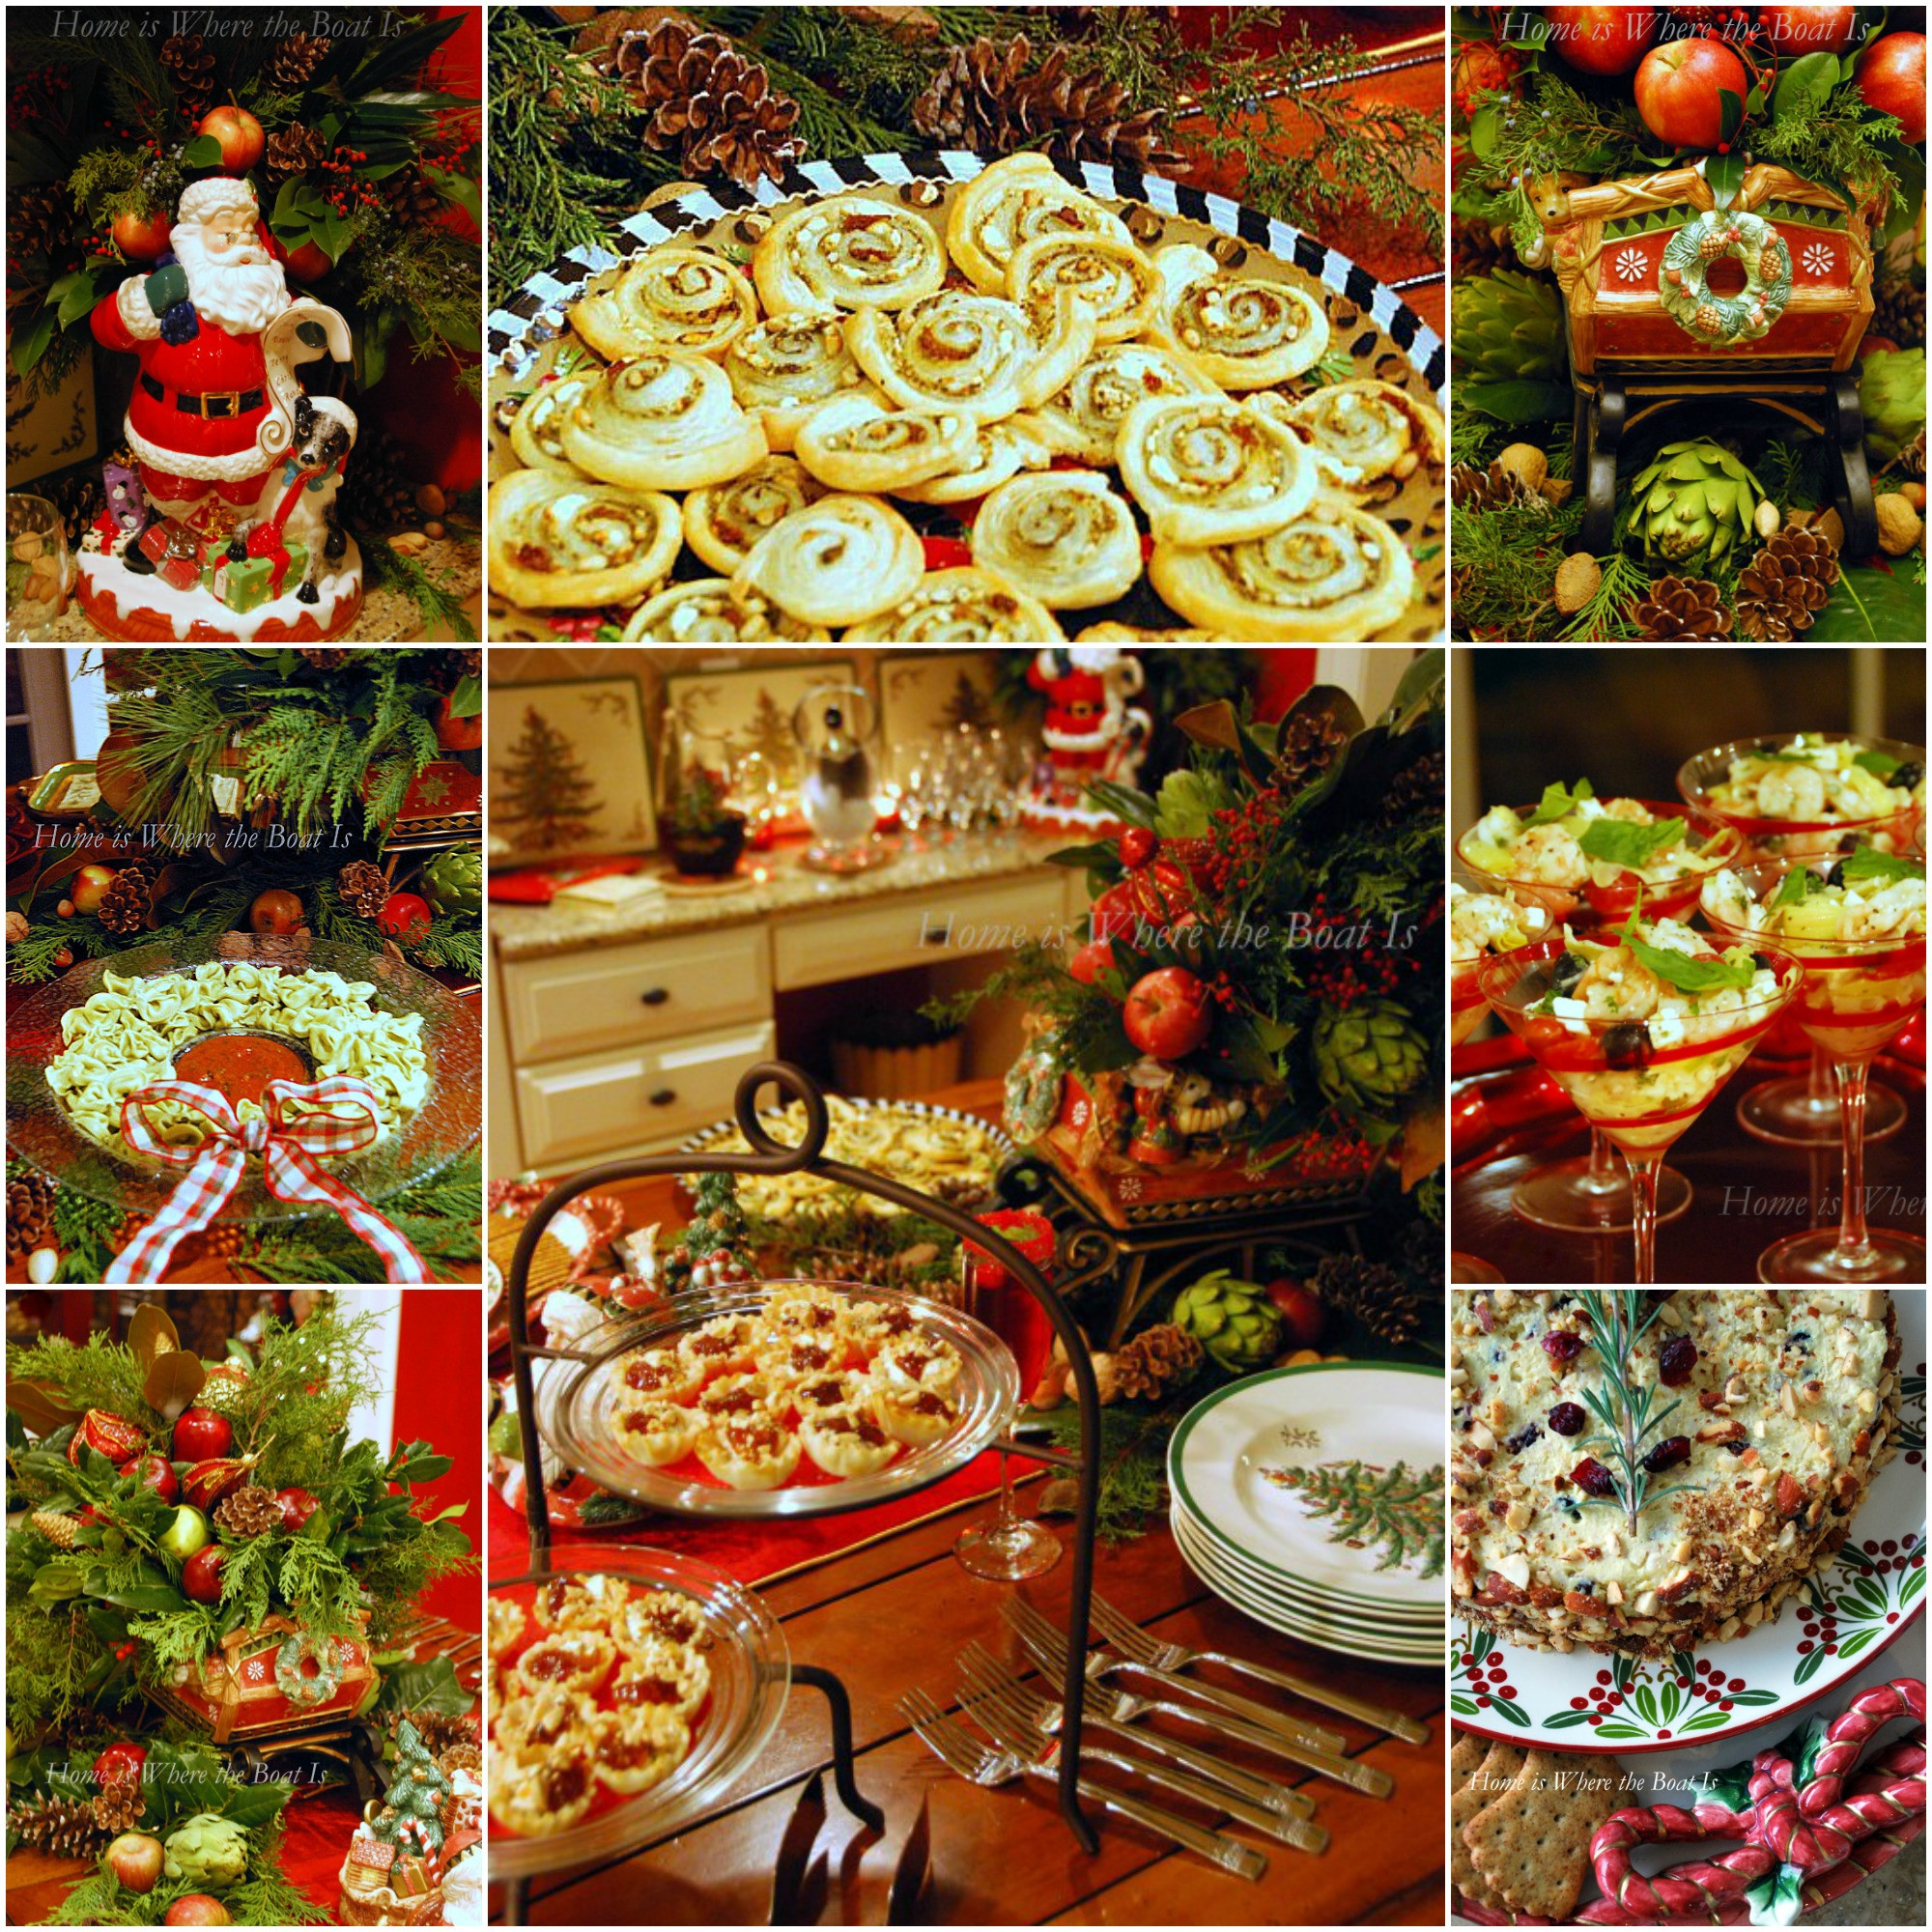 Best Appetizers For Christmas Party  Christmas Party Appetizers – Home is Where the Boat Is